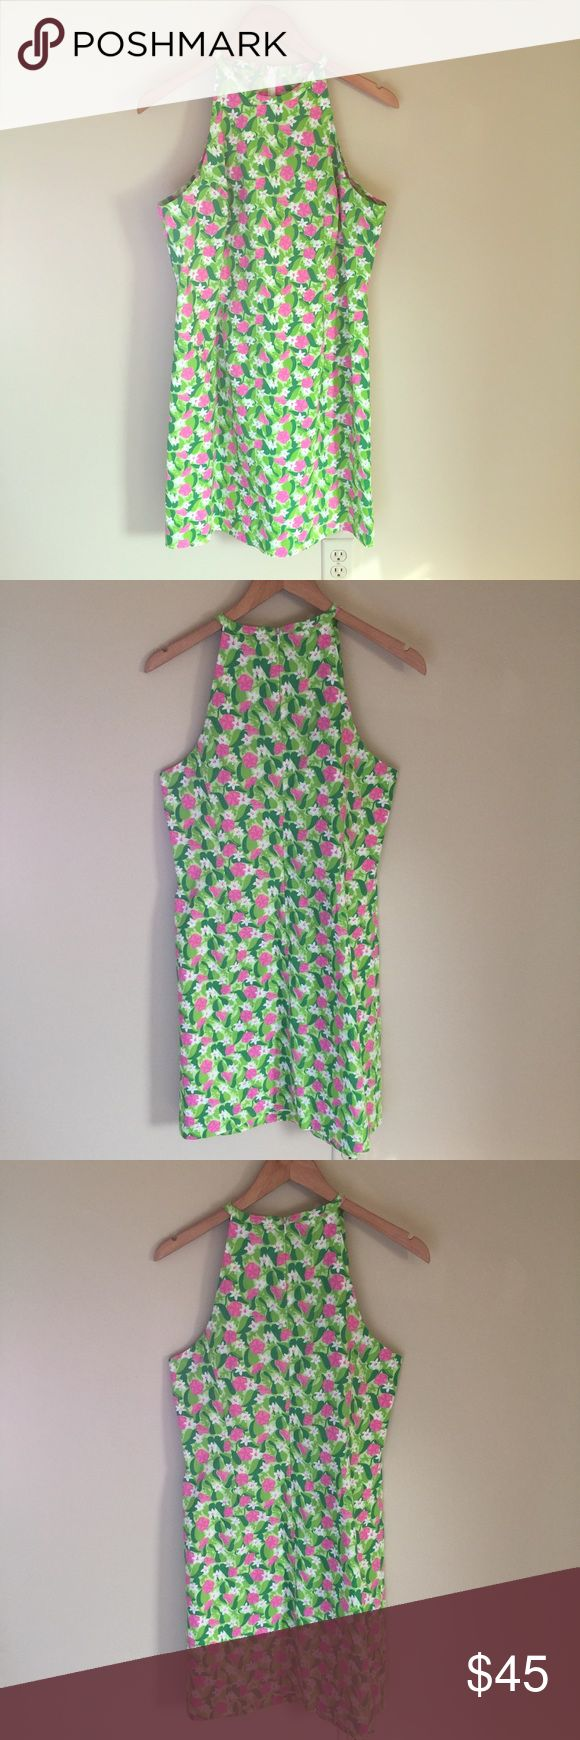 """Lilly Pulitzer Dress Size 8 Beautiful lilly Pulitzer dress. Excellent condition. Please measure before purchasing and let me know if you have any questions or additional info needed   Armpit to armpit: 17""""  Armpit to bottom: 27"""" Lilly Pulitzer Dresses"""